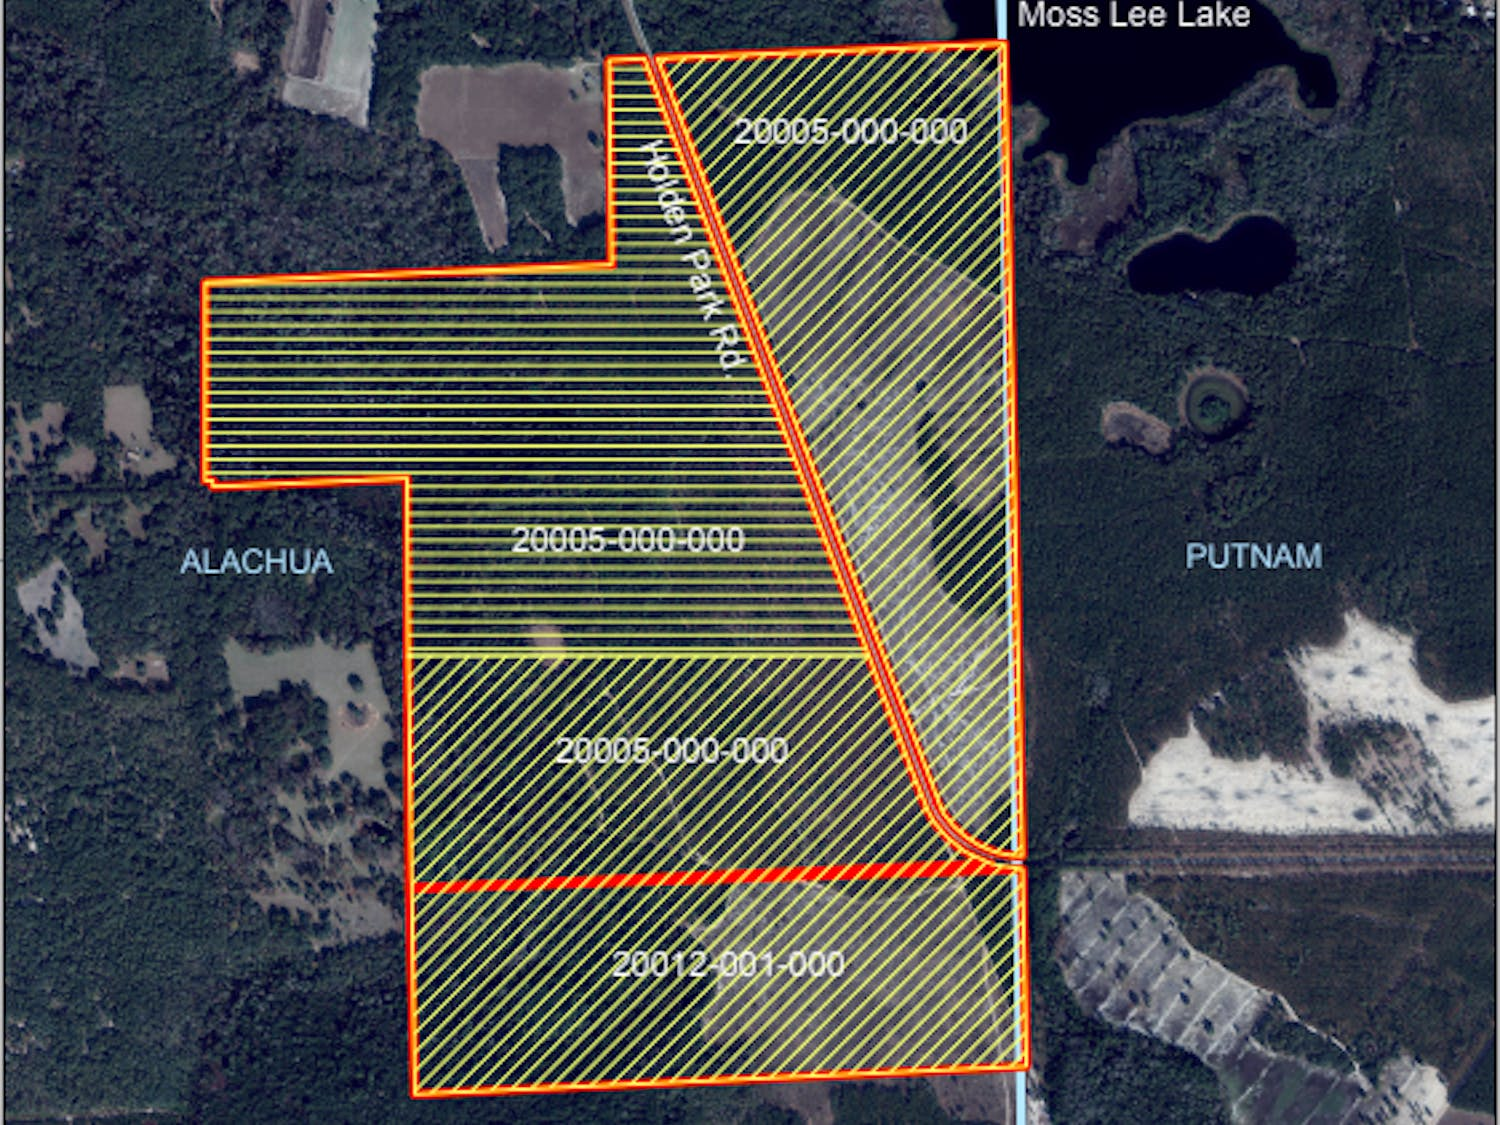 The preservation encompasses almost 600 acres and is located on the Putnam County line near Lochloosa Lake, said Sandra Vardaman, the land conservation program supervisor for the county's Parks and Conservation Lands Program.